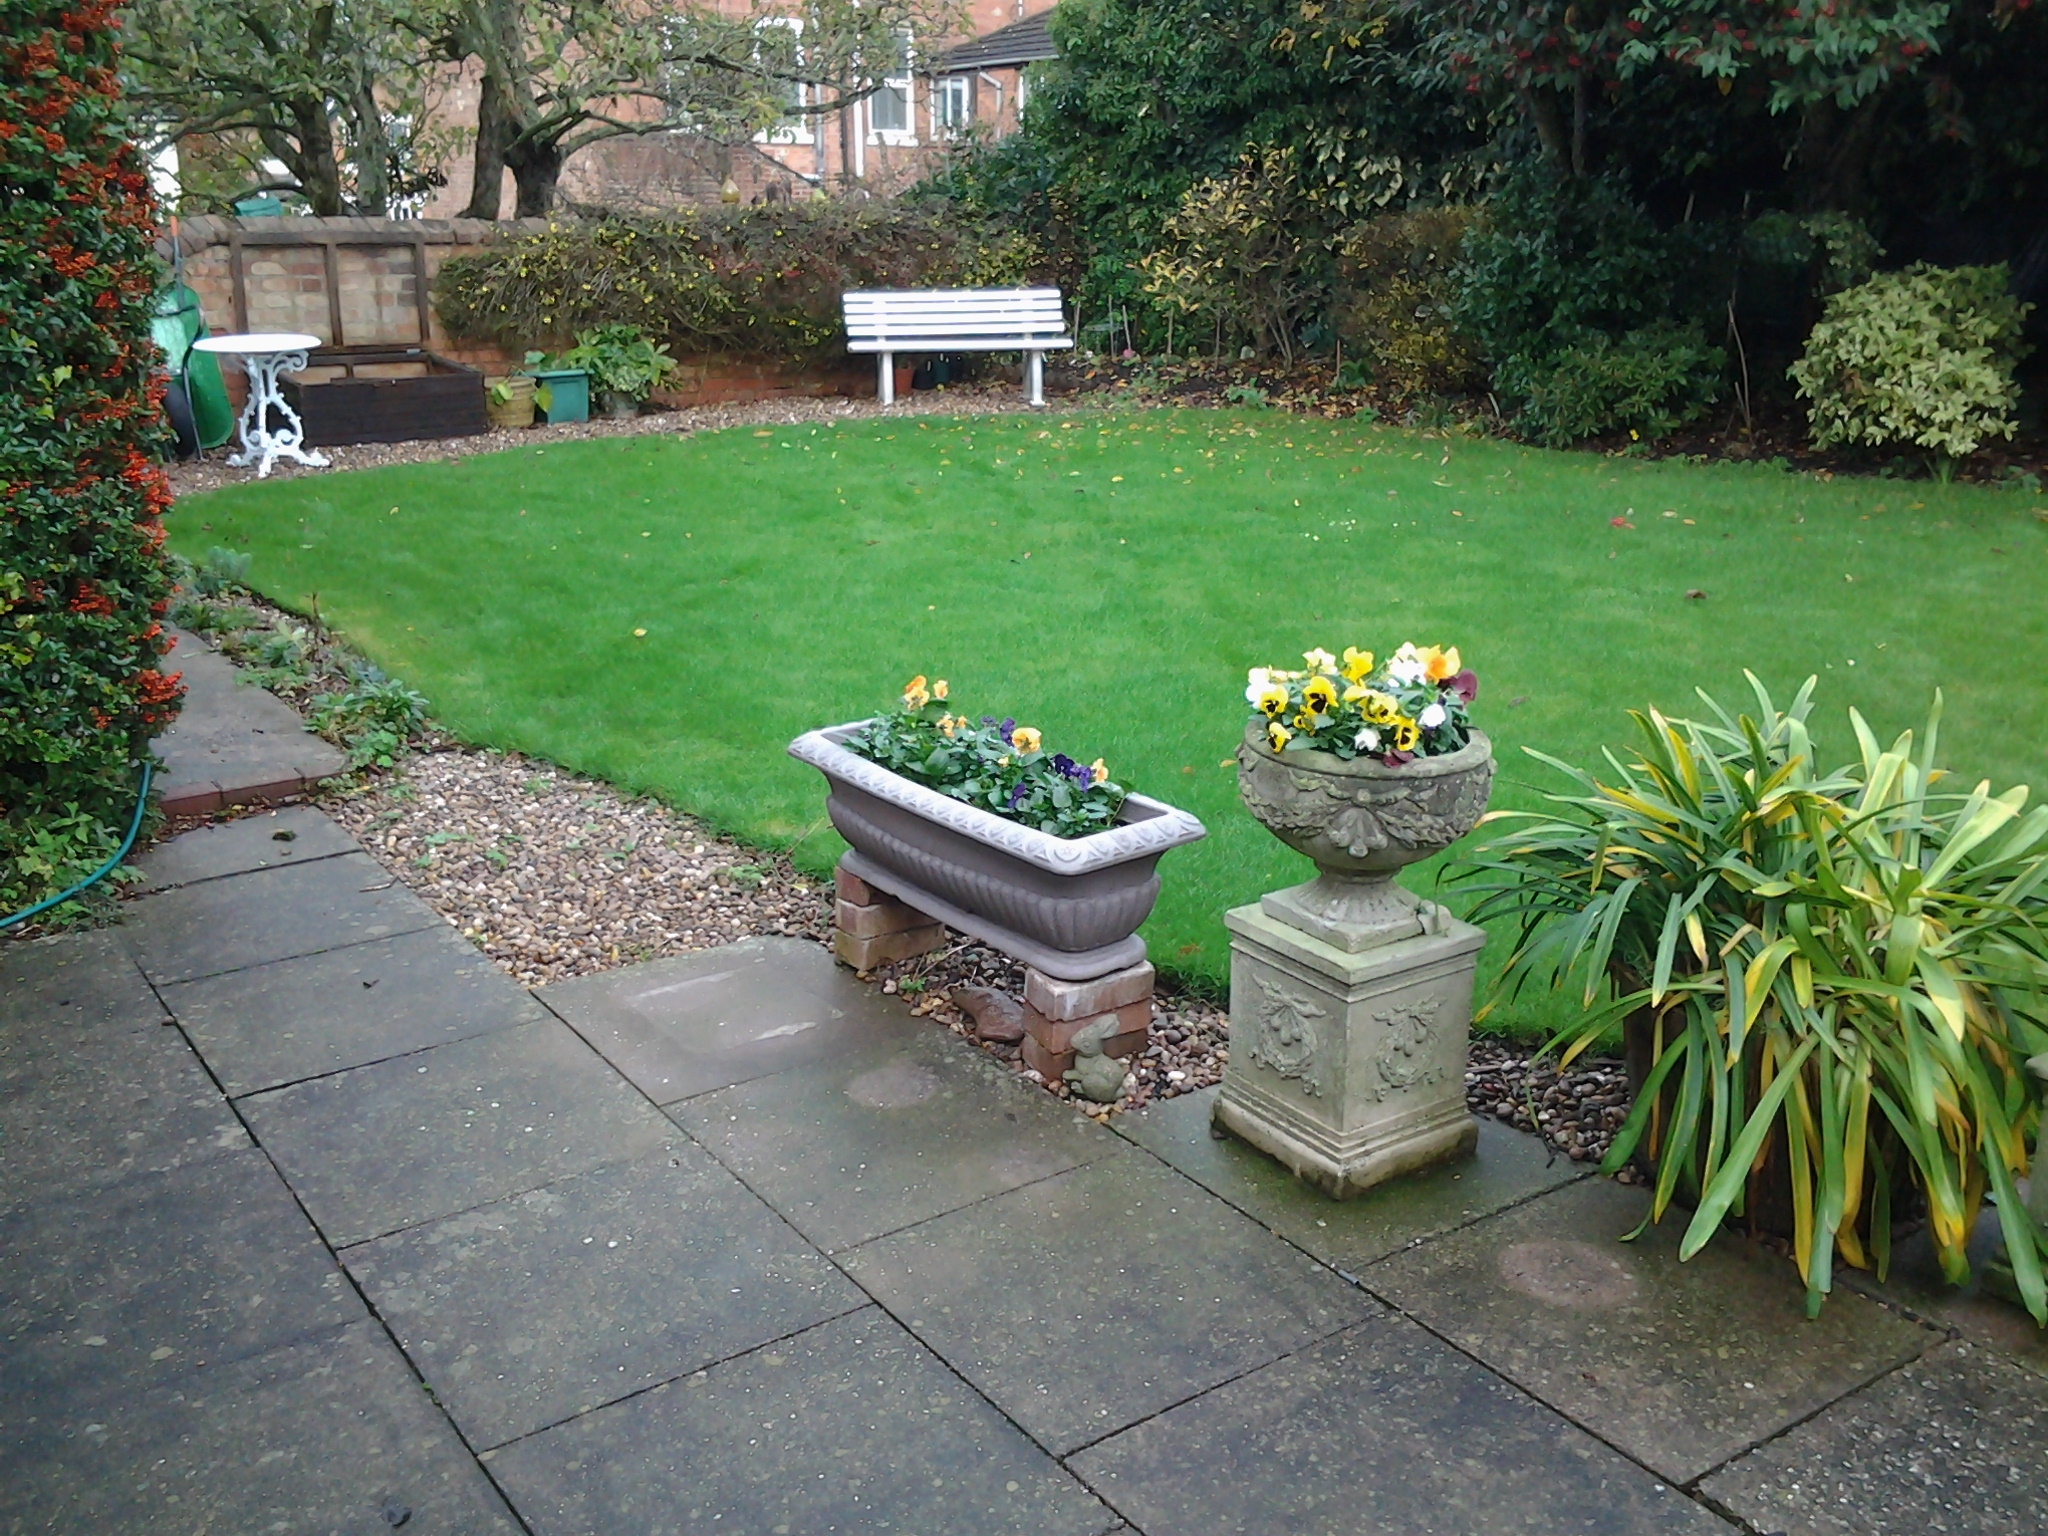 Chris bonham plants nottingham garden design and for Garden design nottingham